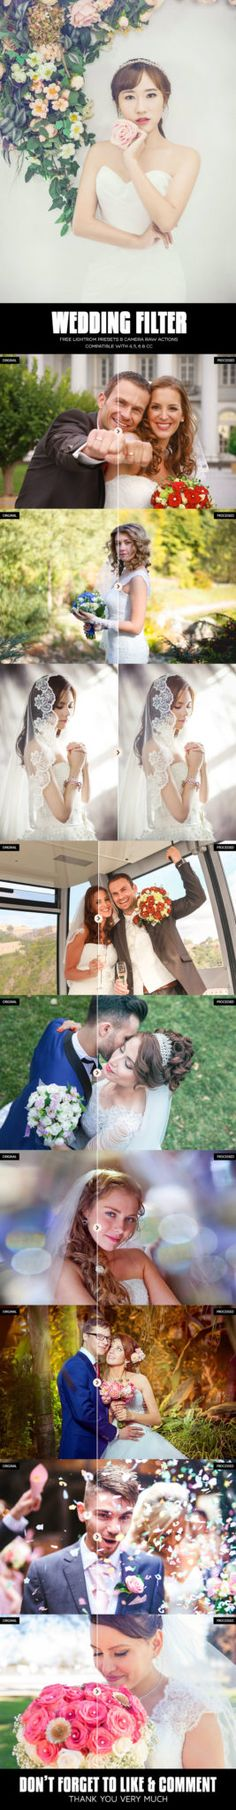 Introducing free wedding Lightroom presets for wedding photographers by PresetsHub. Set contains 10 filters which can ease your editing workflow.